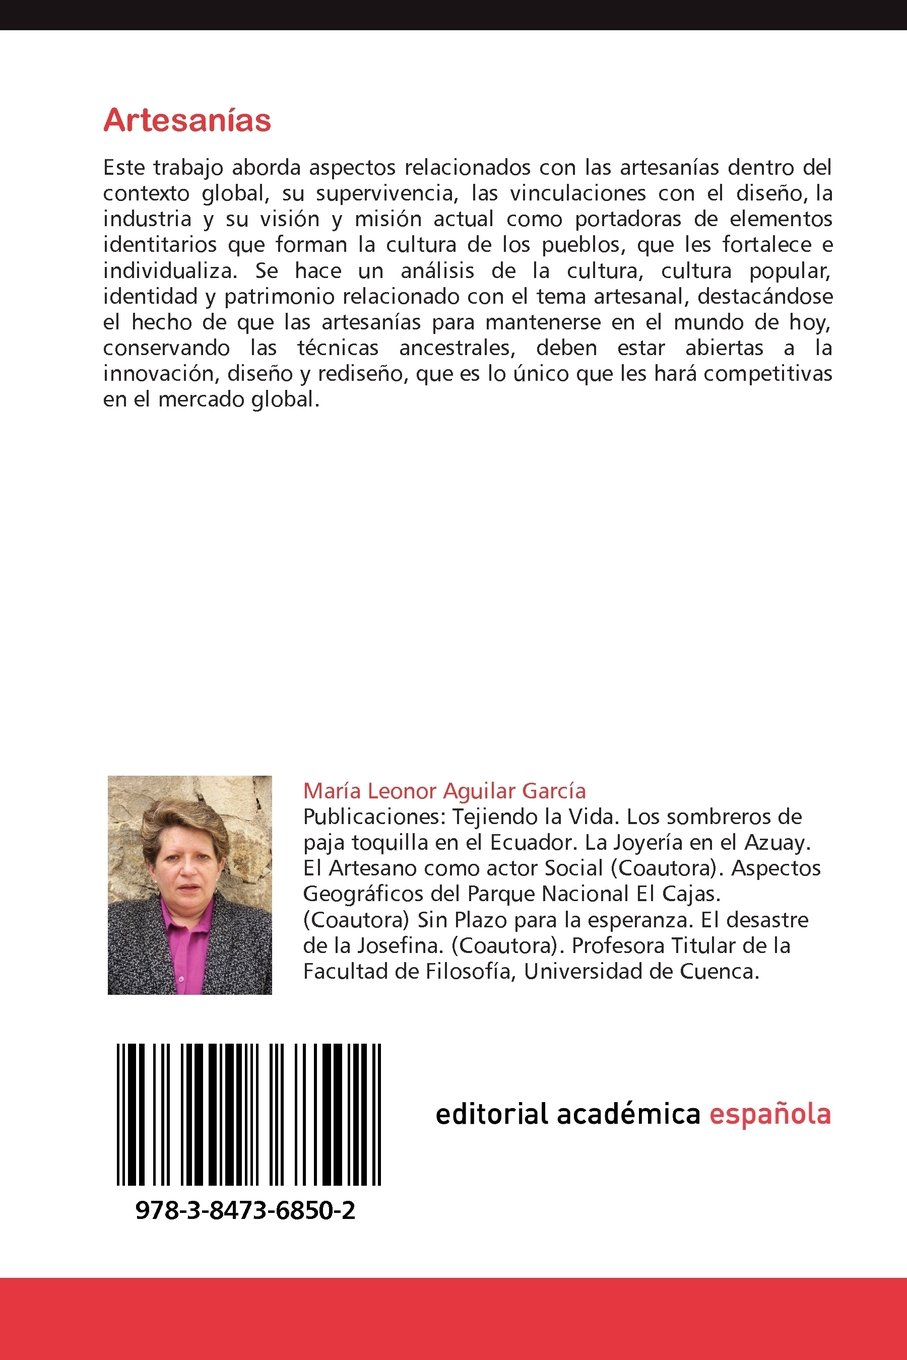 Amazon.com: Artesanías: en el Contexto Global (Spanish Edition) (9783847368502): María Leonor Aguilar García: Books